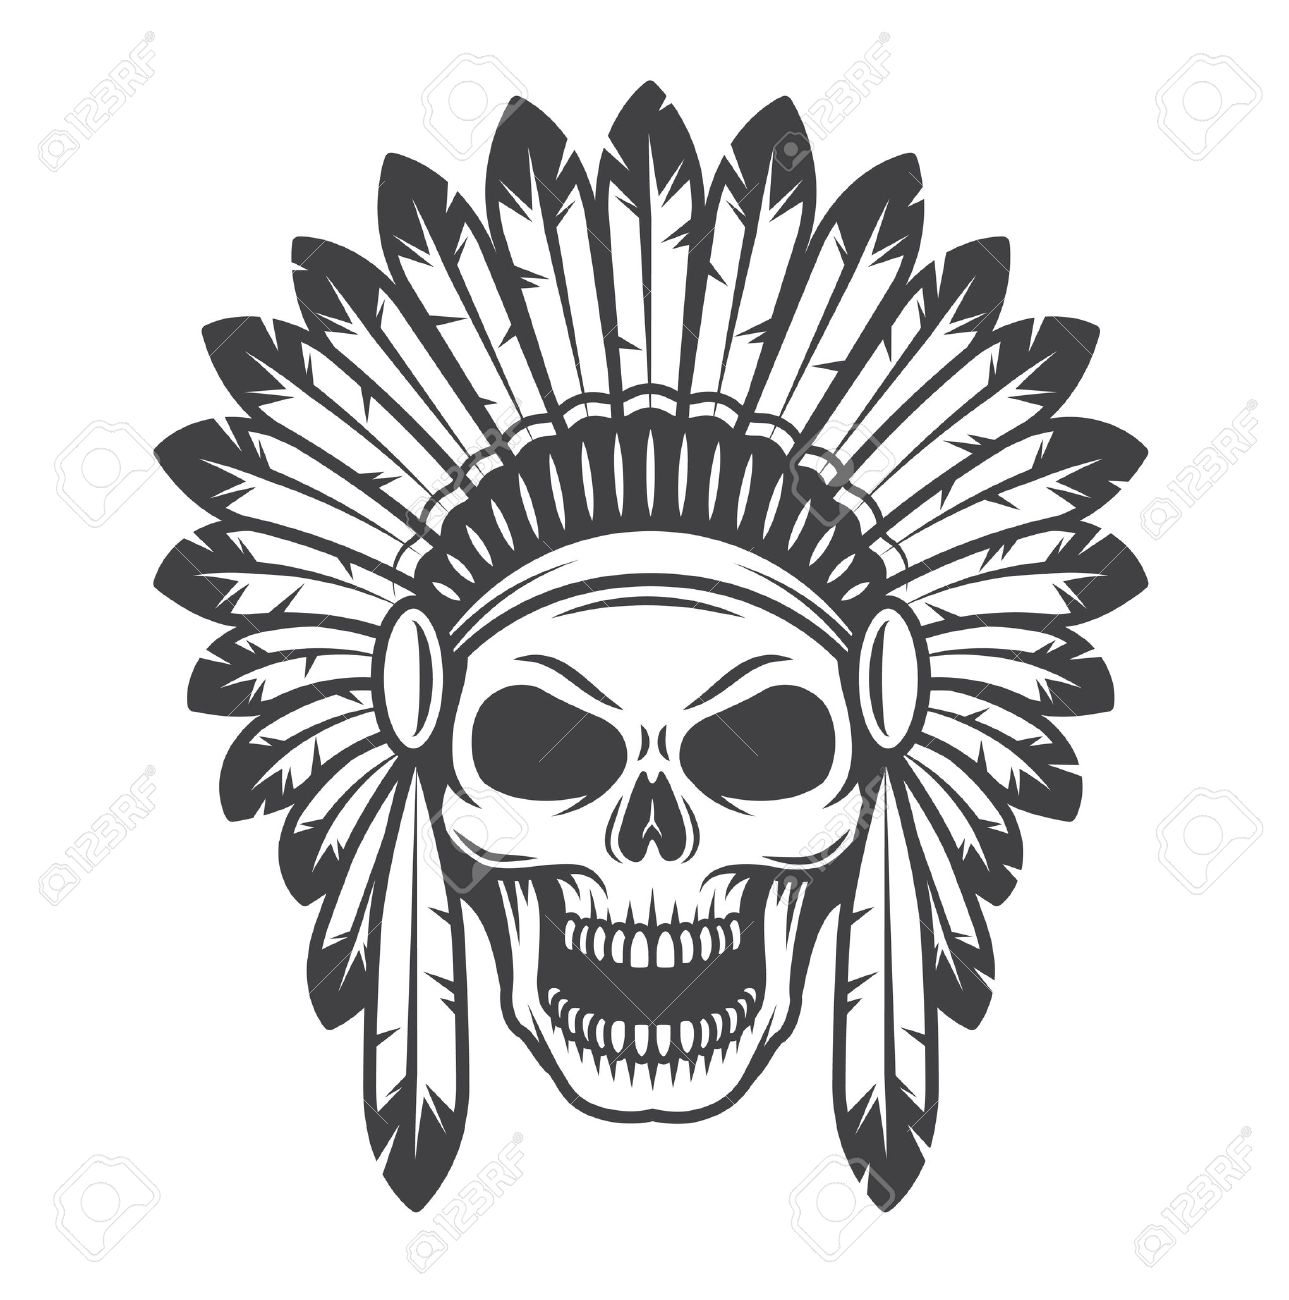 Indian chief headdress stock photos royalty free business images illustration of american indian skull monochrome style wild west theme biocorpaavc